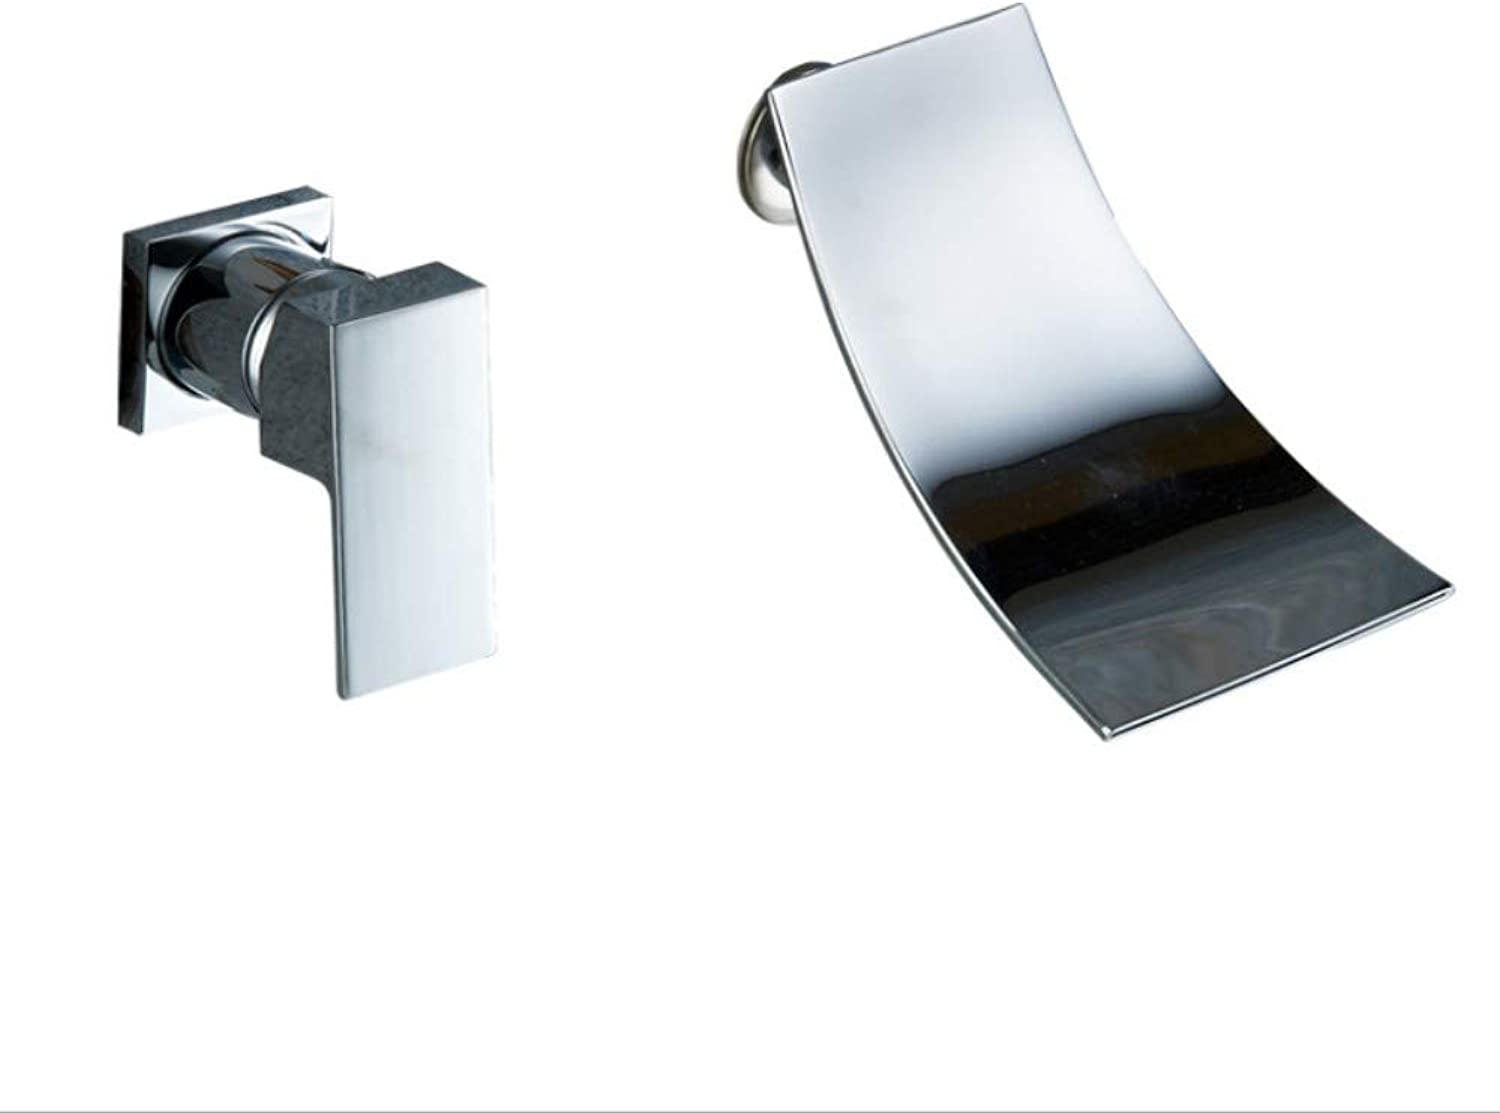 Bathroom Sink Basin Lever Mixer Tap Bathroom Bathtub, Face Basin, Mixing Faucet, Copper-Plated Chrome-Plated Wall, Single Double-Hole Basin, Waterfall Faucet